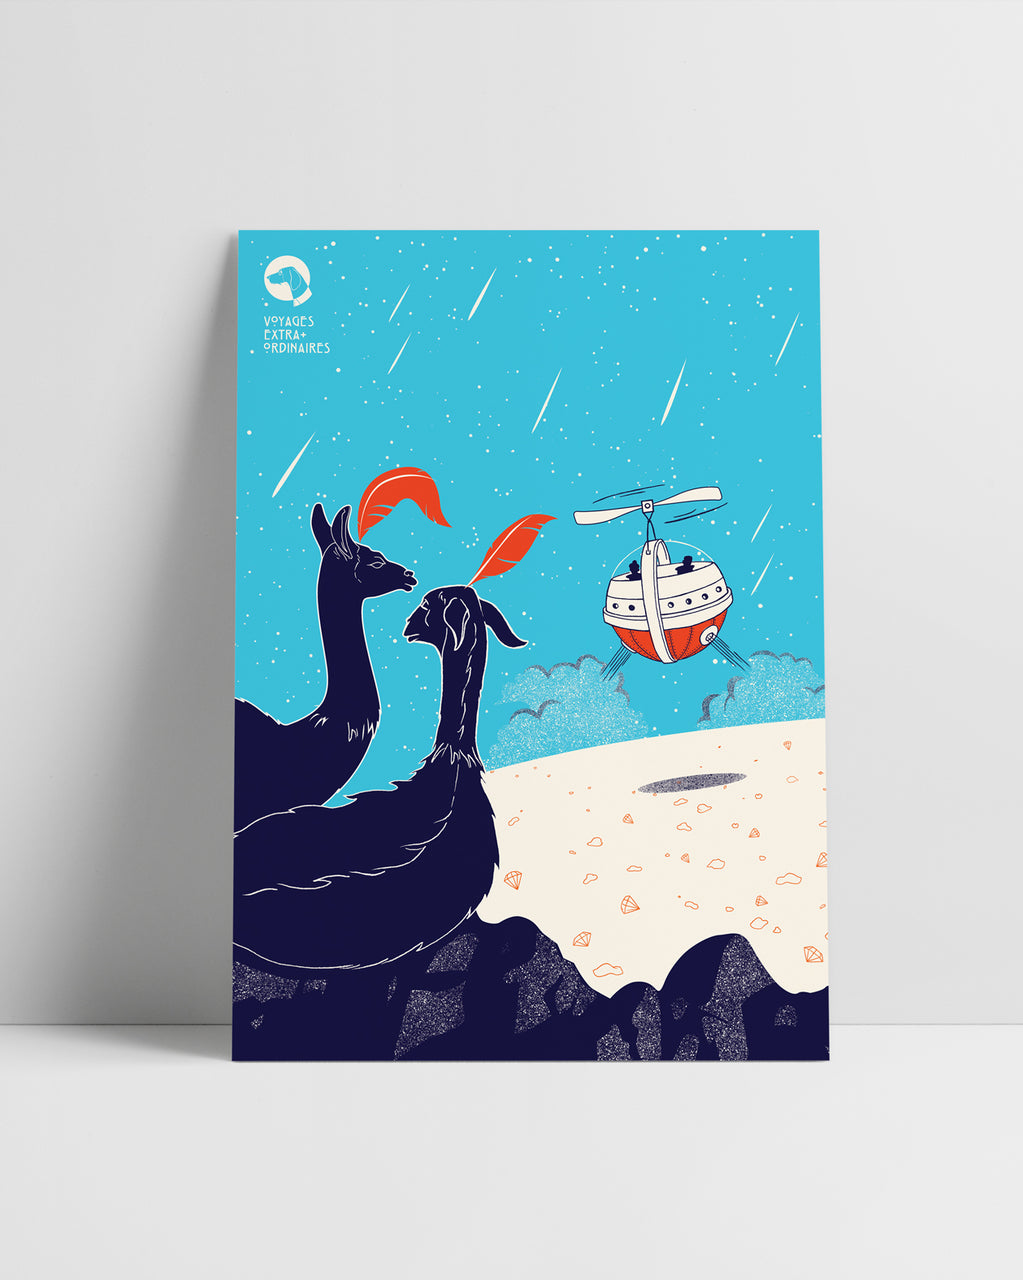 Voyages Extraordinaires || A3 Original Illustration Poster, Digital Print